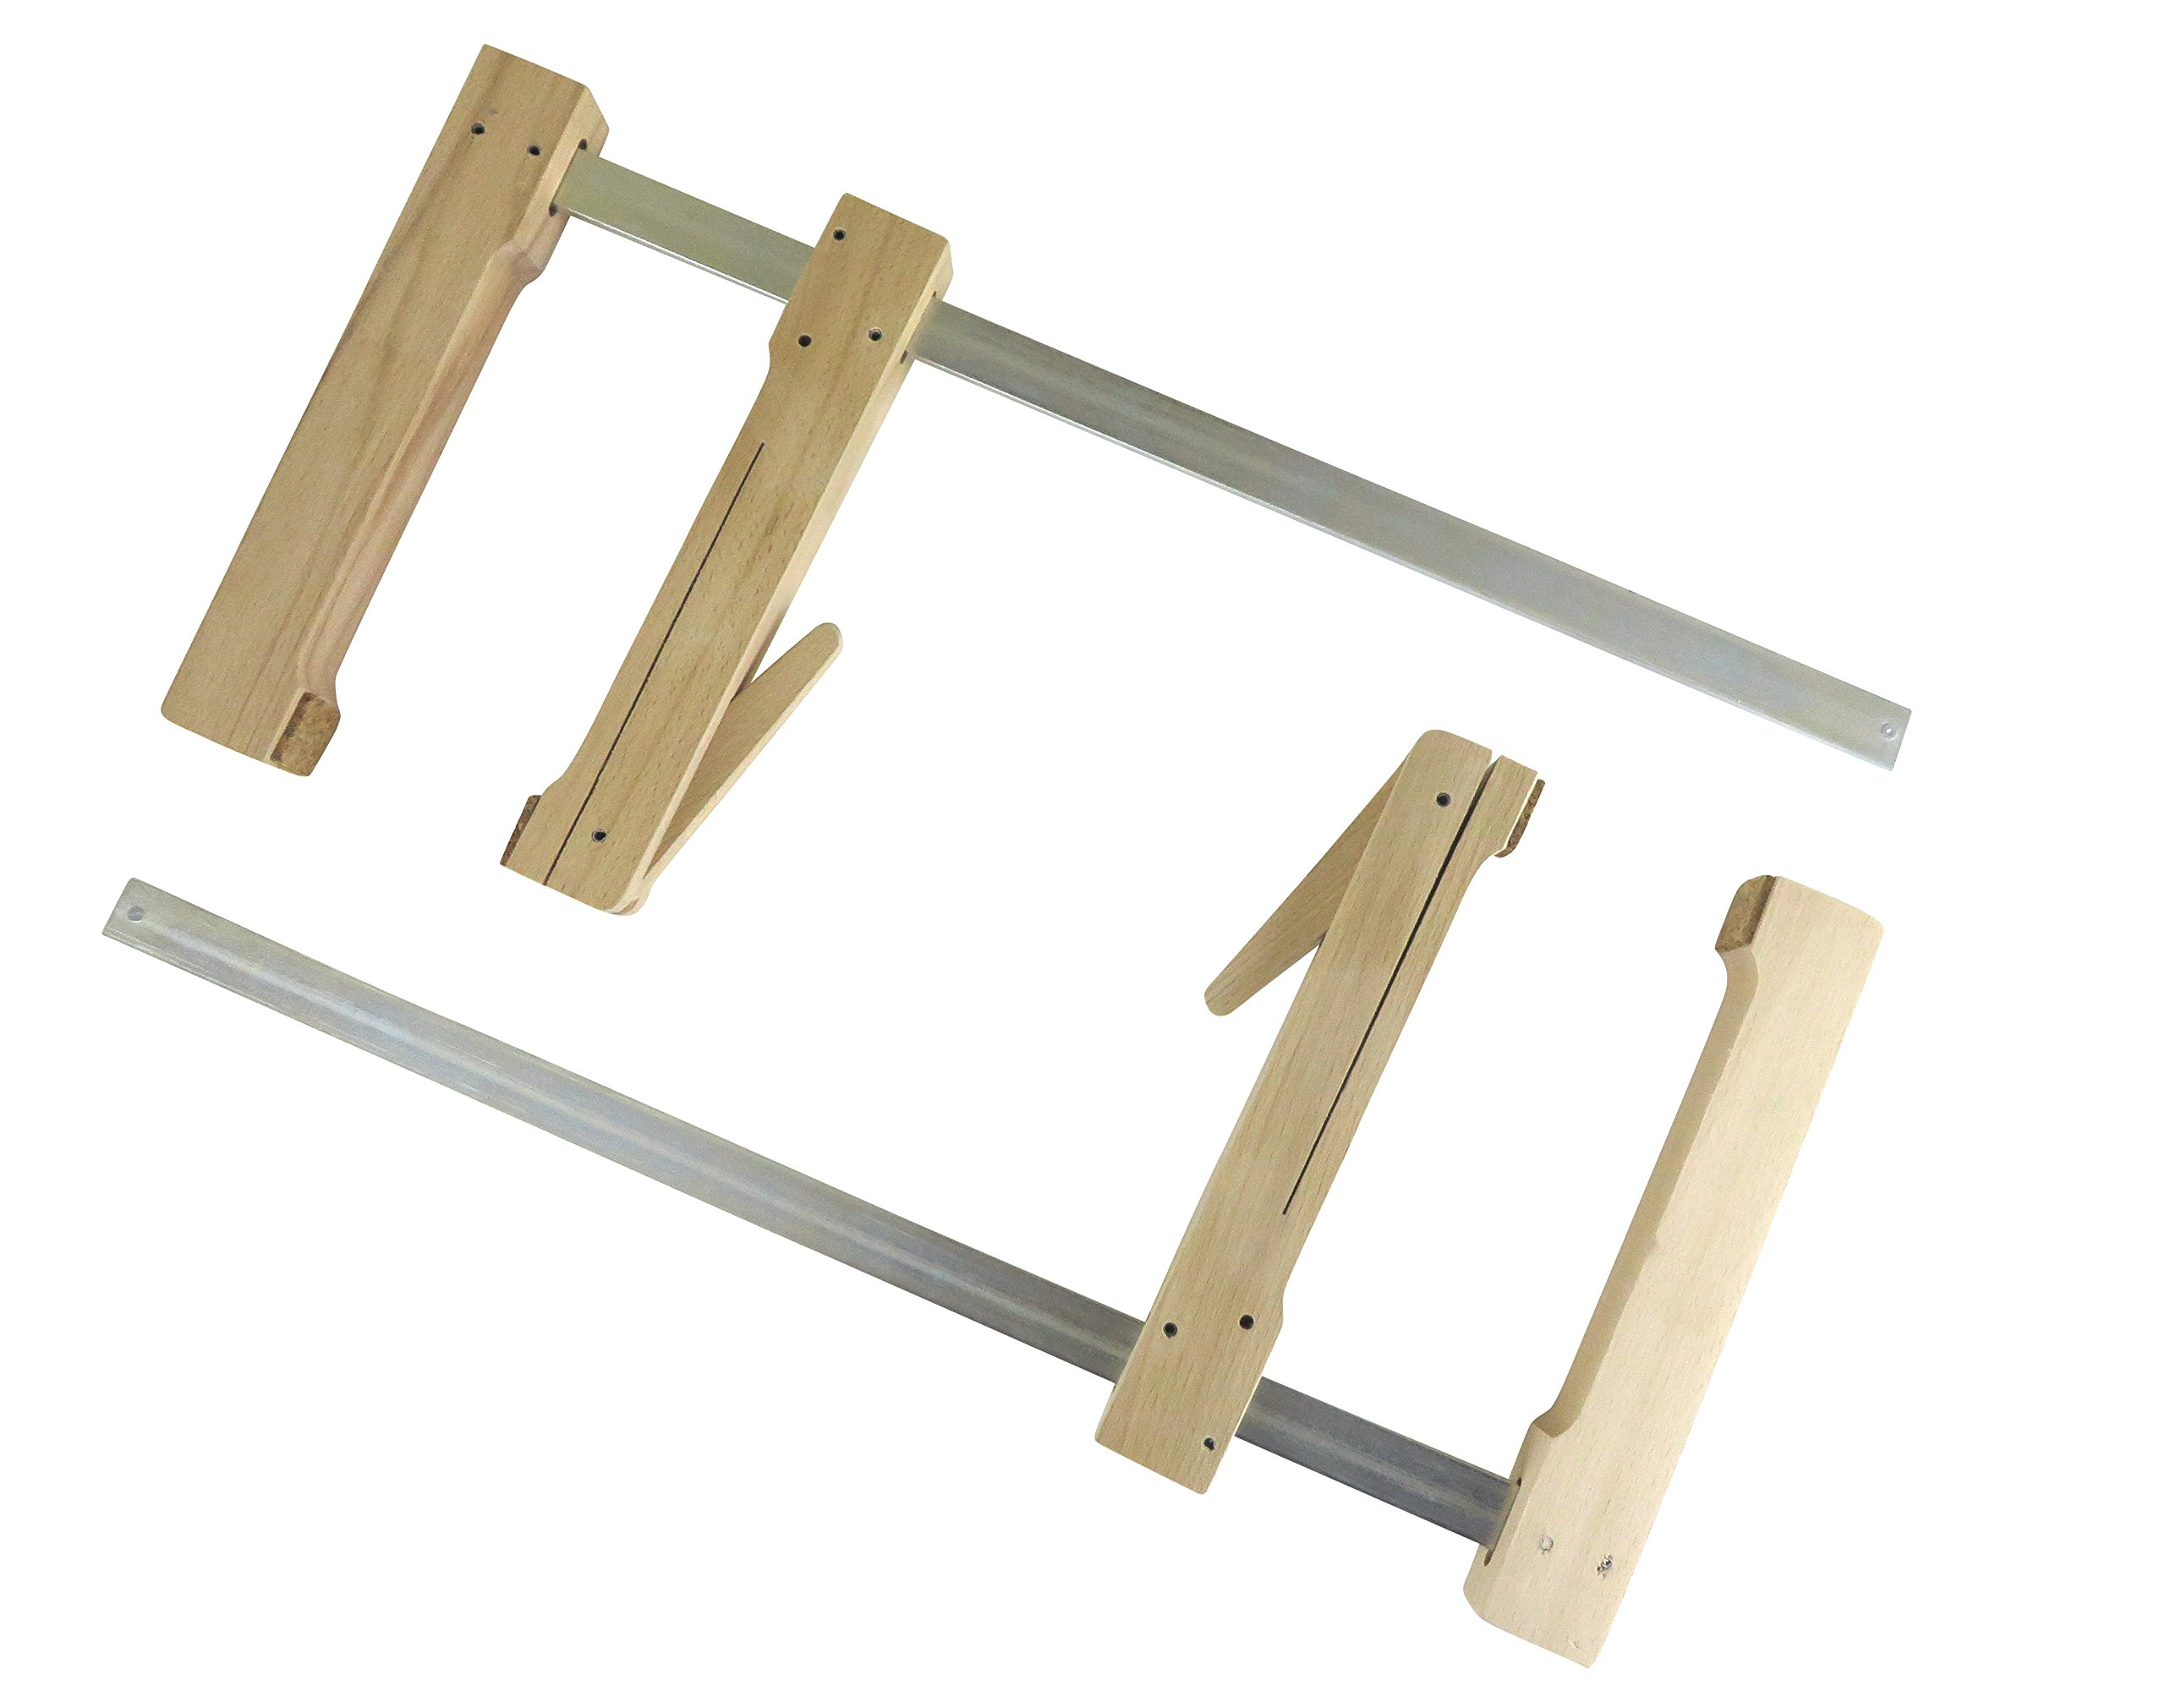 "2 each Pair Taytools 31-400 Wooden Wood Cam Action Clamps Deep Reach 15-1/2"" Opening by 7-1/2"" Depth European Beech"